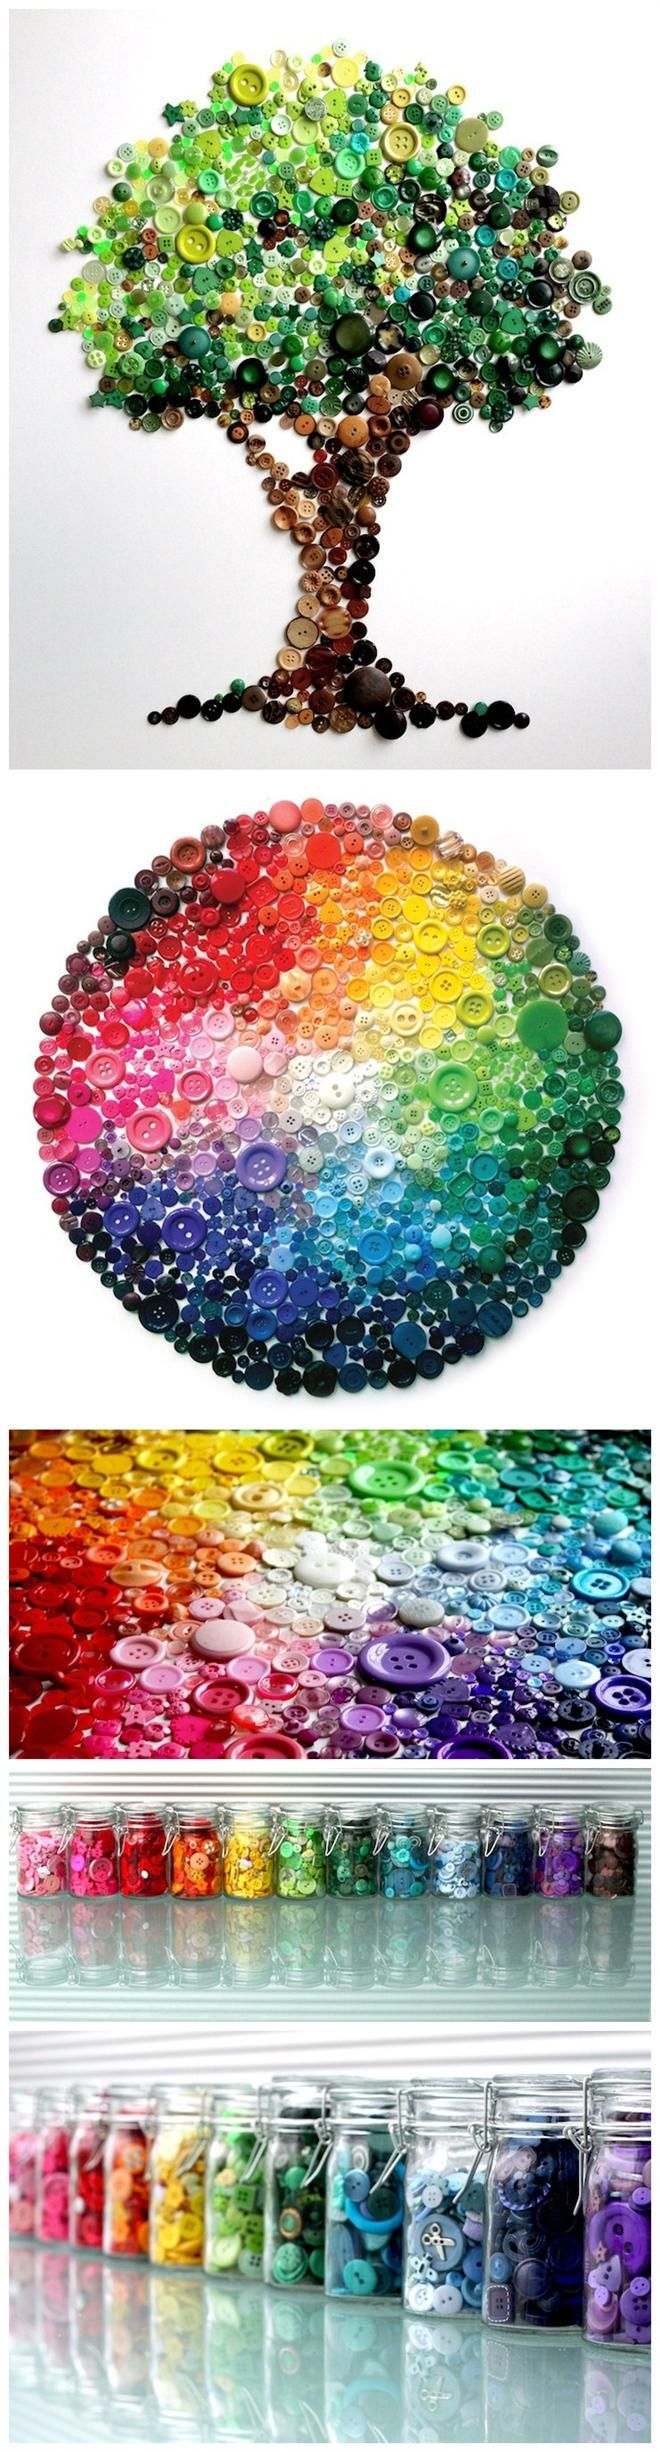 Button pictures - like the dot painting (when I'm in a more sophisticated mood I will add the artist I'm attempting to reference)